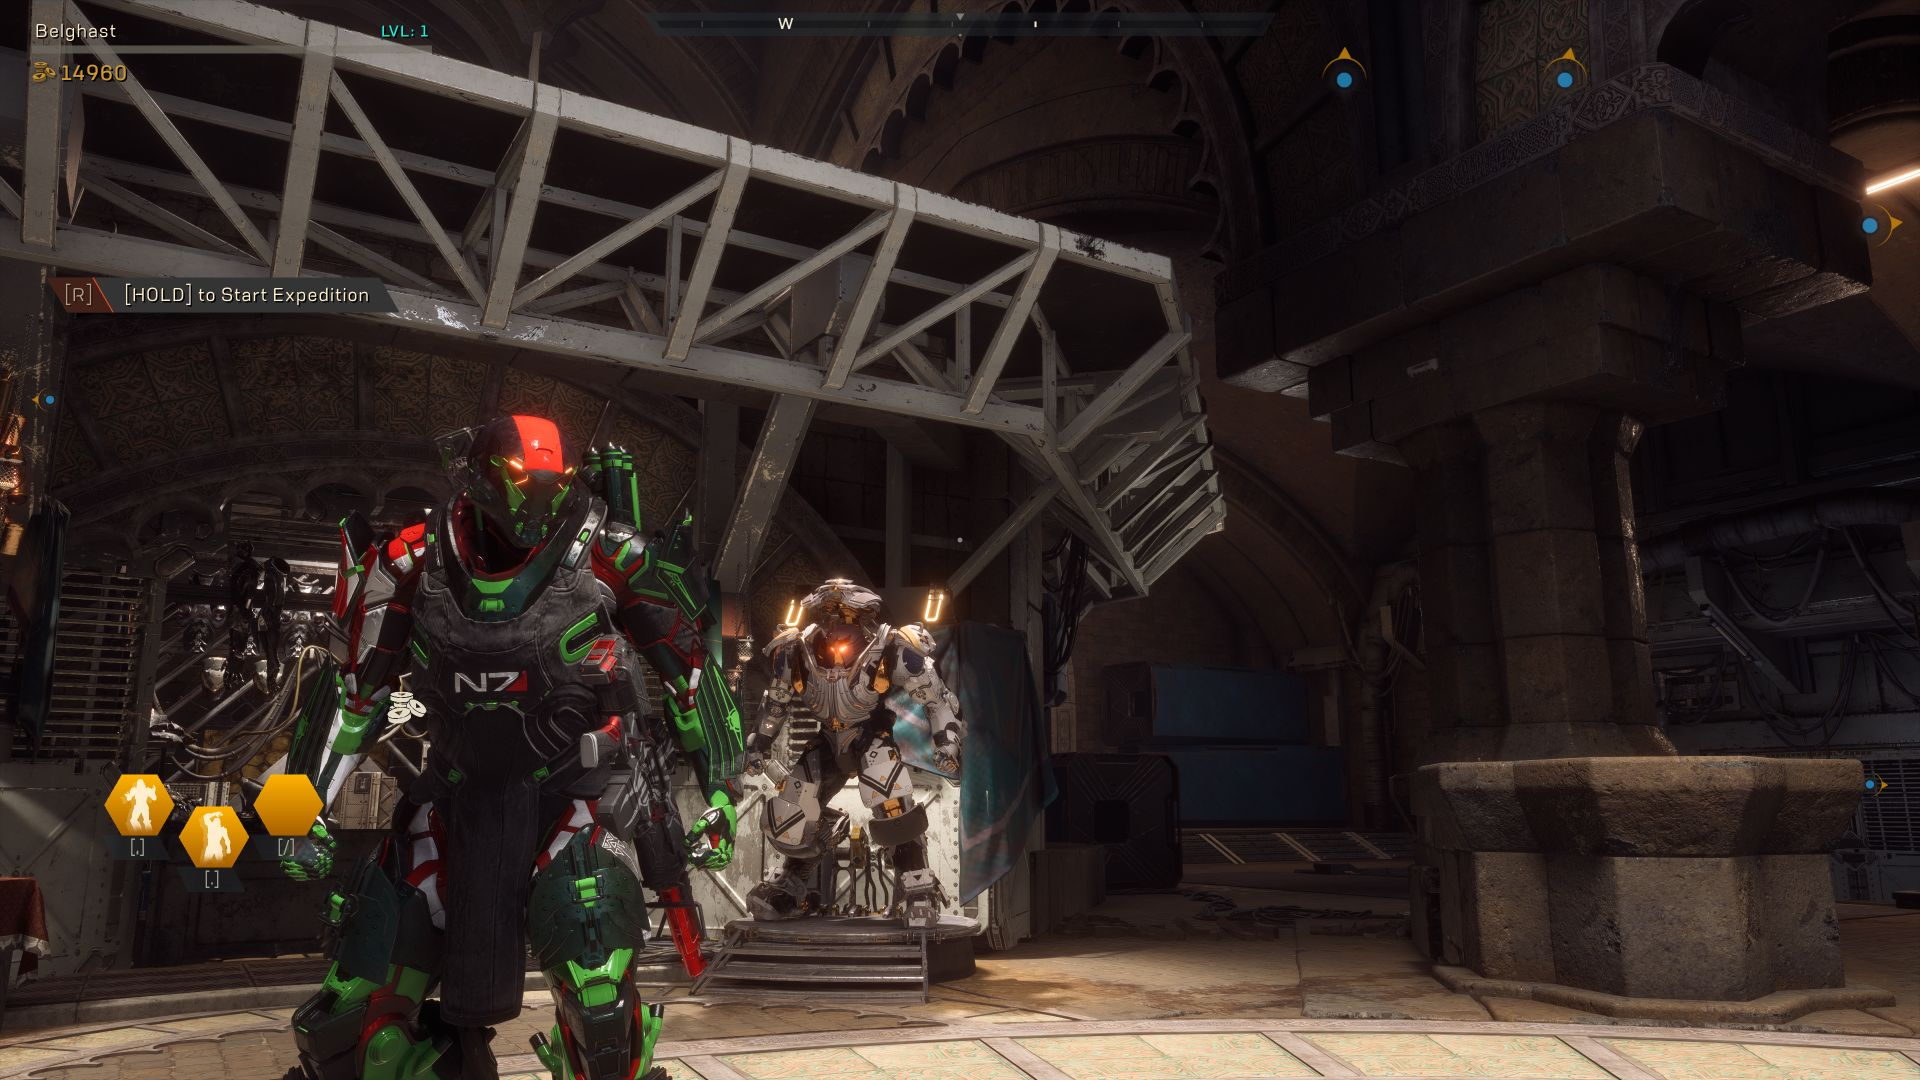 anthem-screenshot-2019-03-14-18-46-29-33